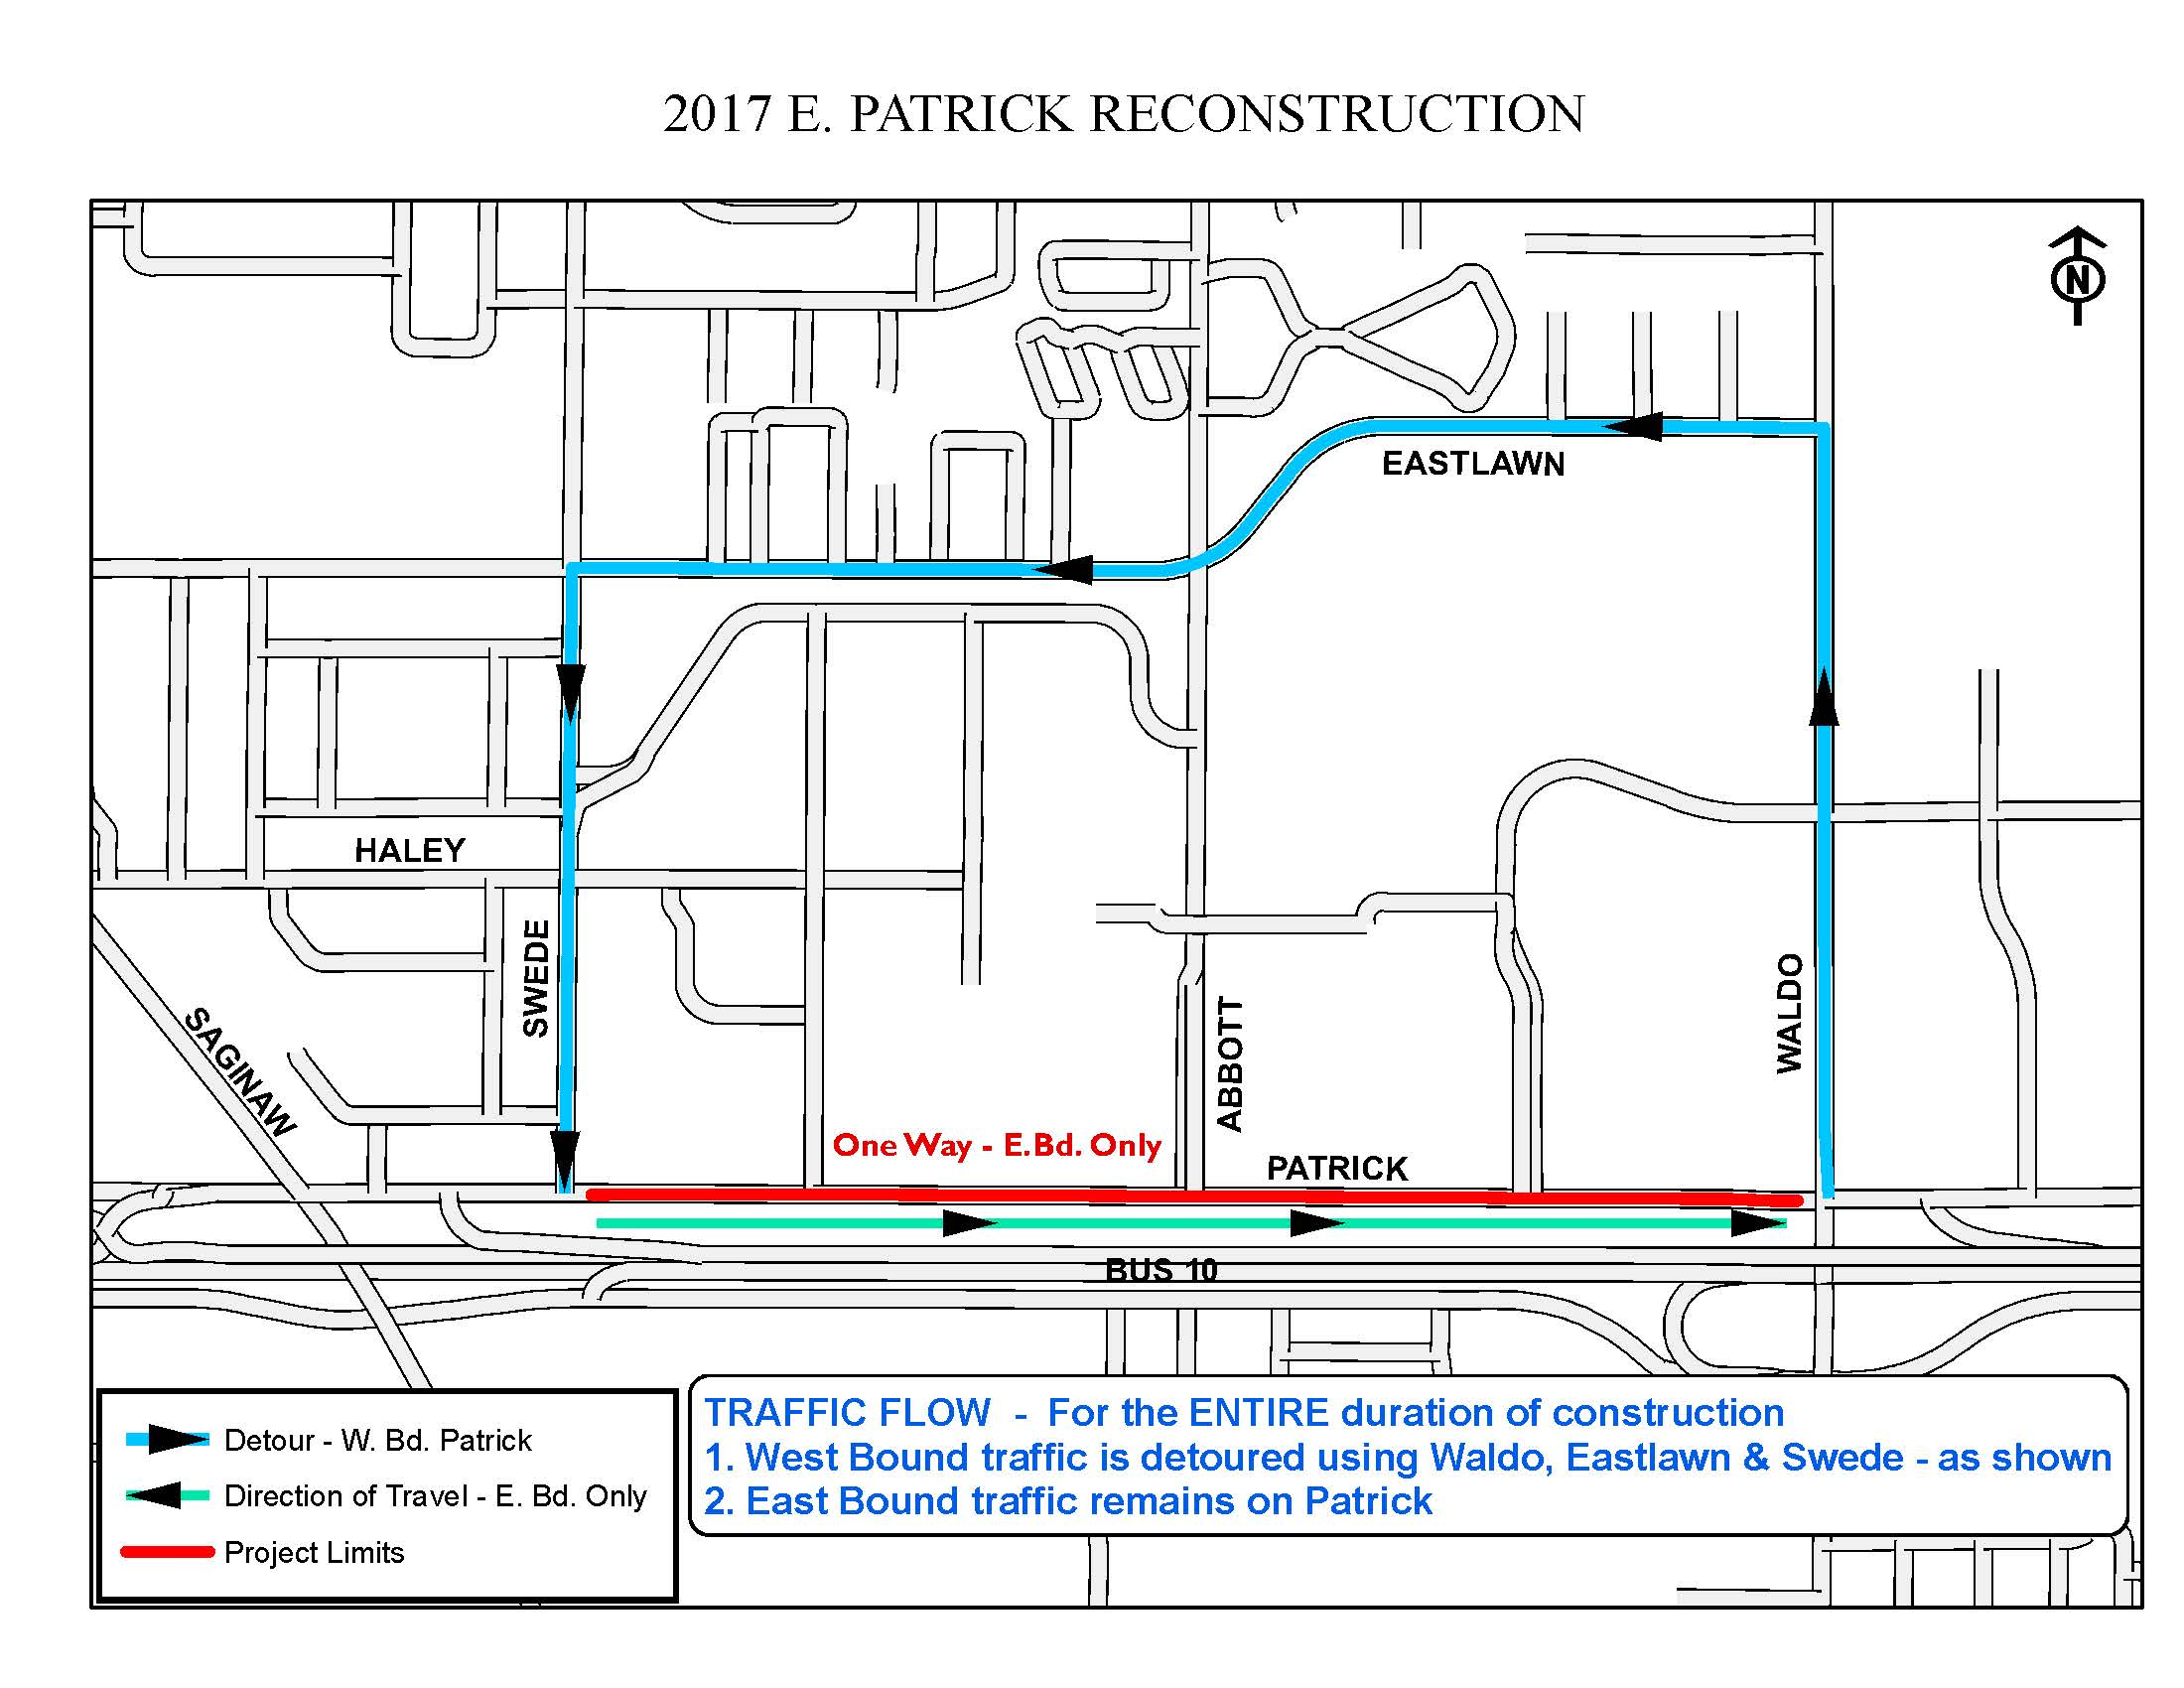 2017 Patrick Road ResurfacingTraffic Map shows the detour for westbound traffic.